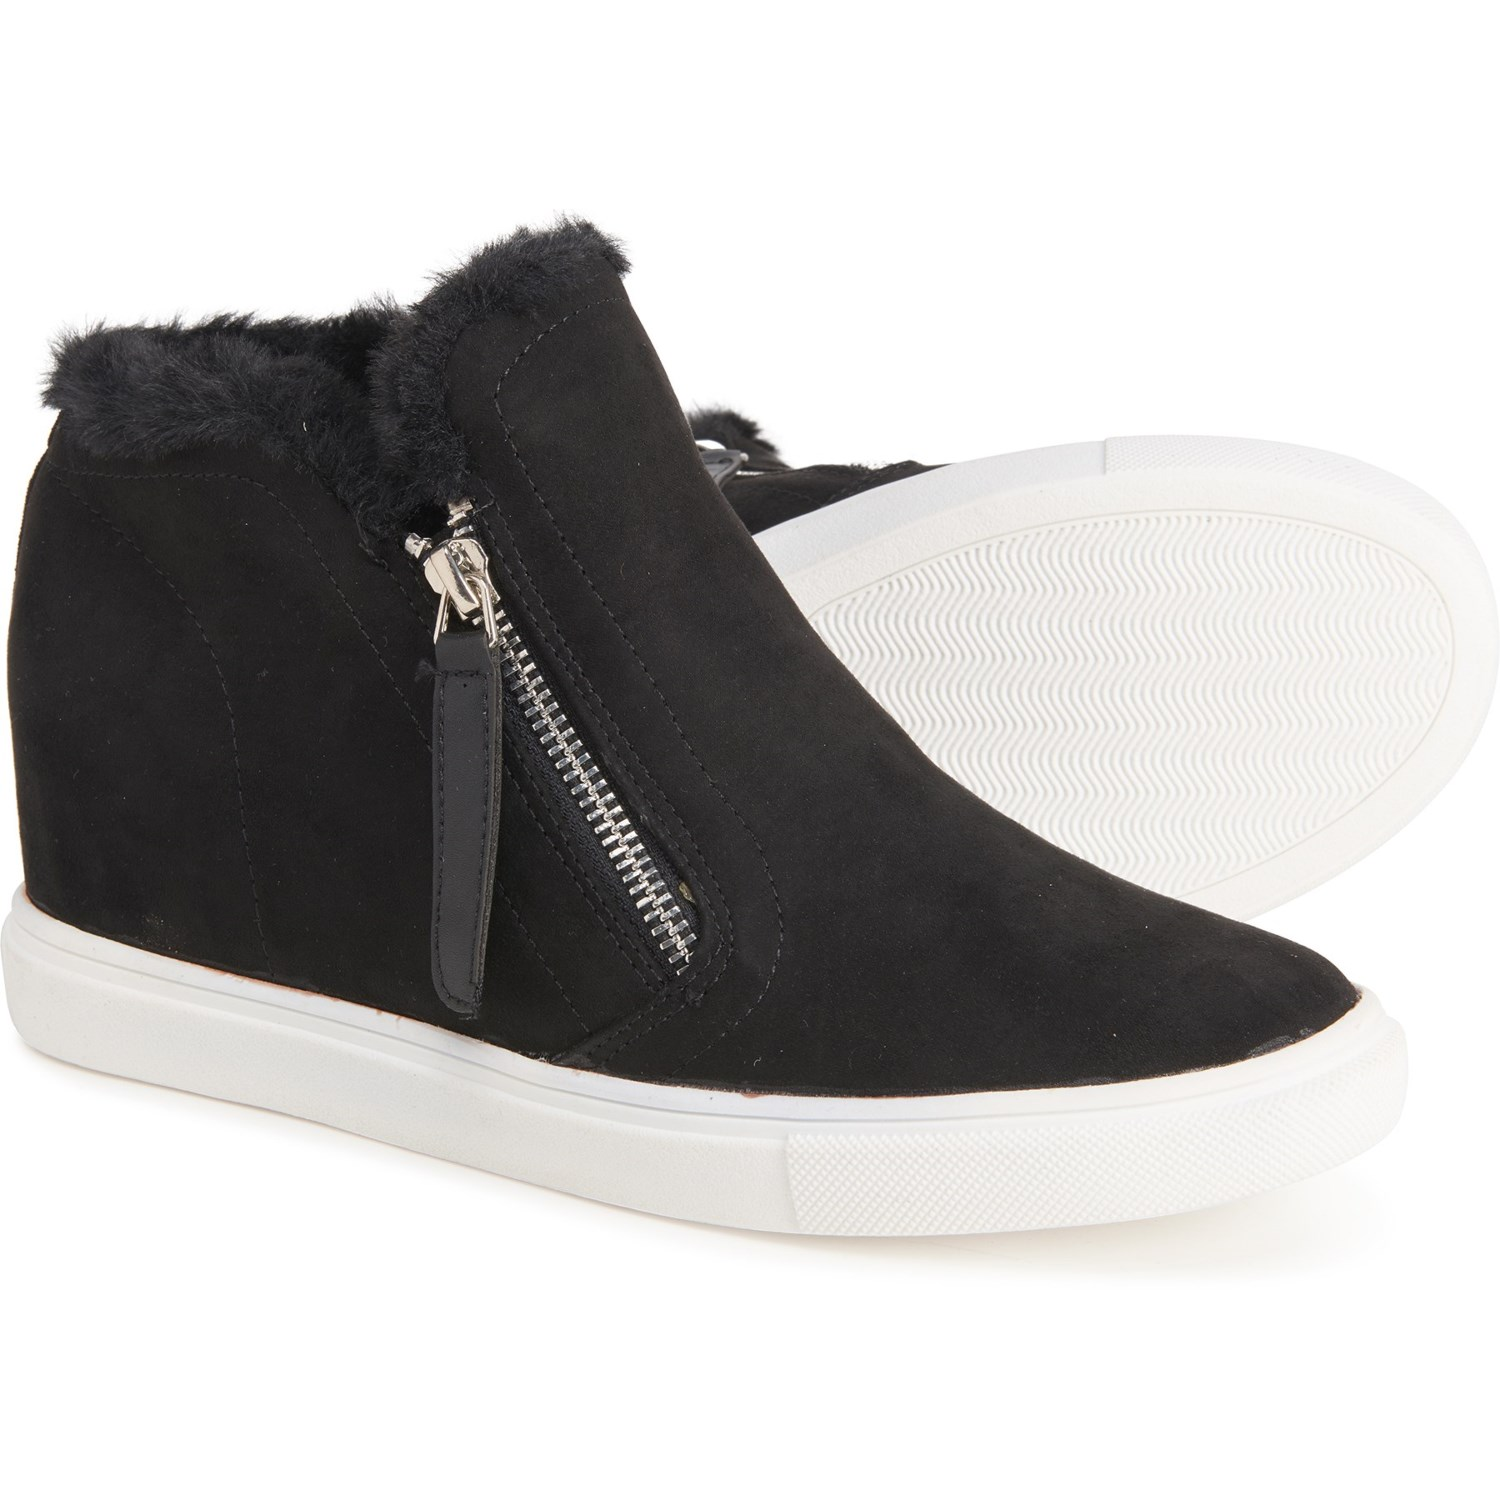 MADDEN GIRL Prevale Cozy-Lined Wedge